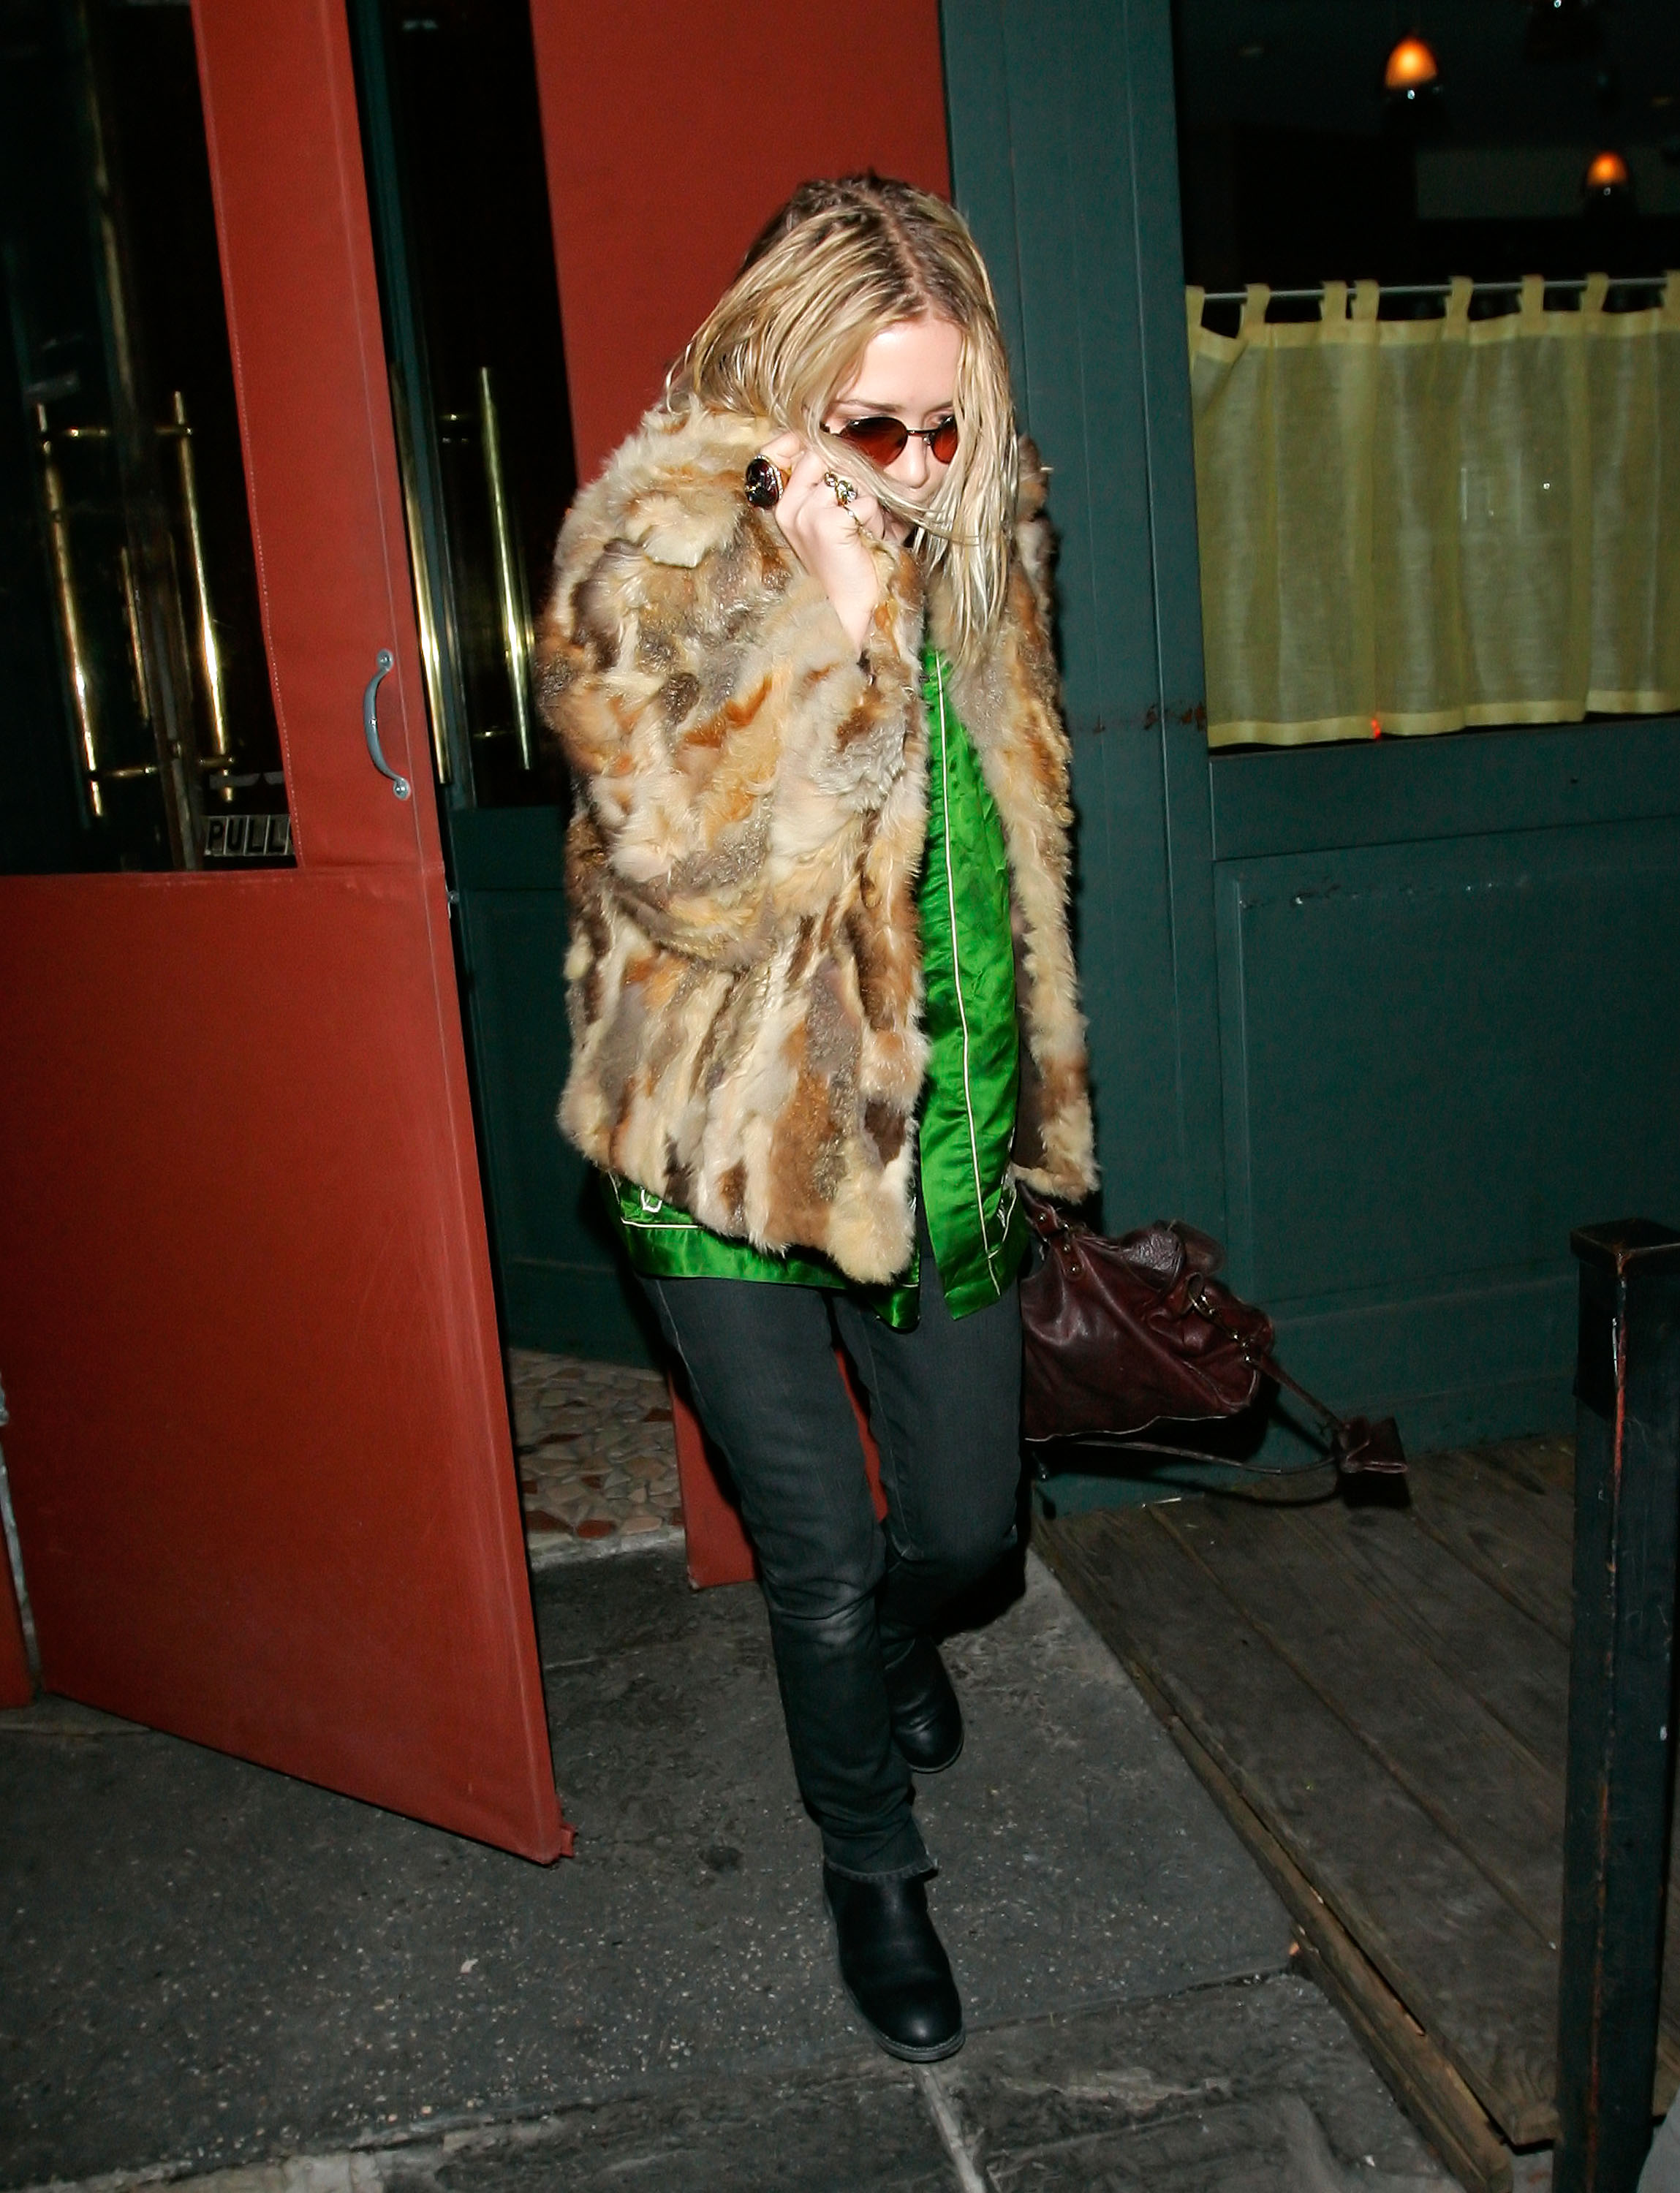 29766_celeb-city.eu_Mary_Kate_Olsen_out_and_about_for_a_late_lunch_in_the_West_Village_05.01.2008_03_122_1114lo.jpg